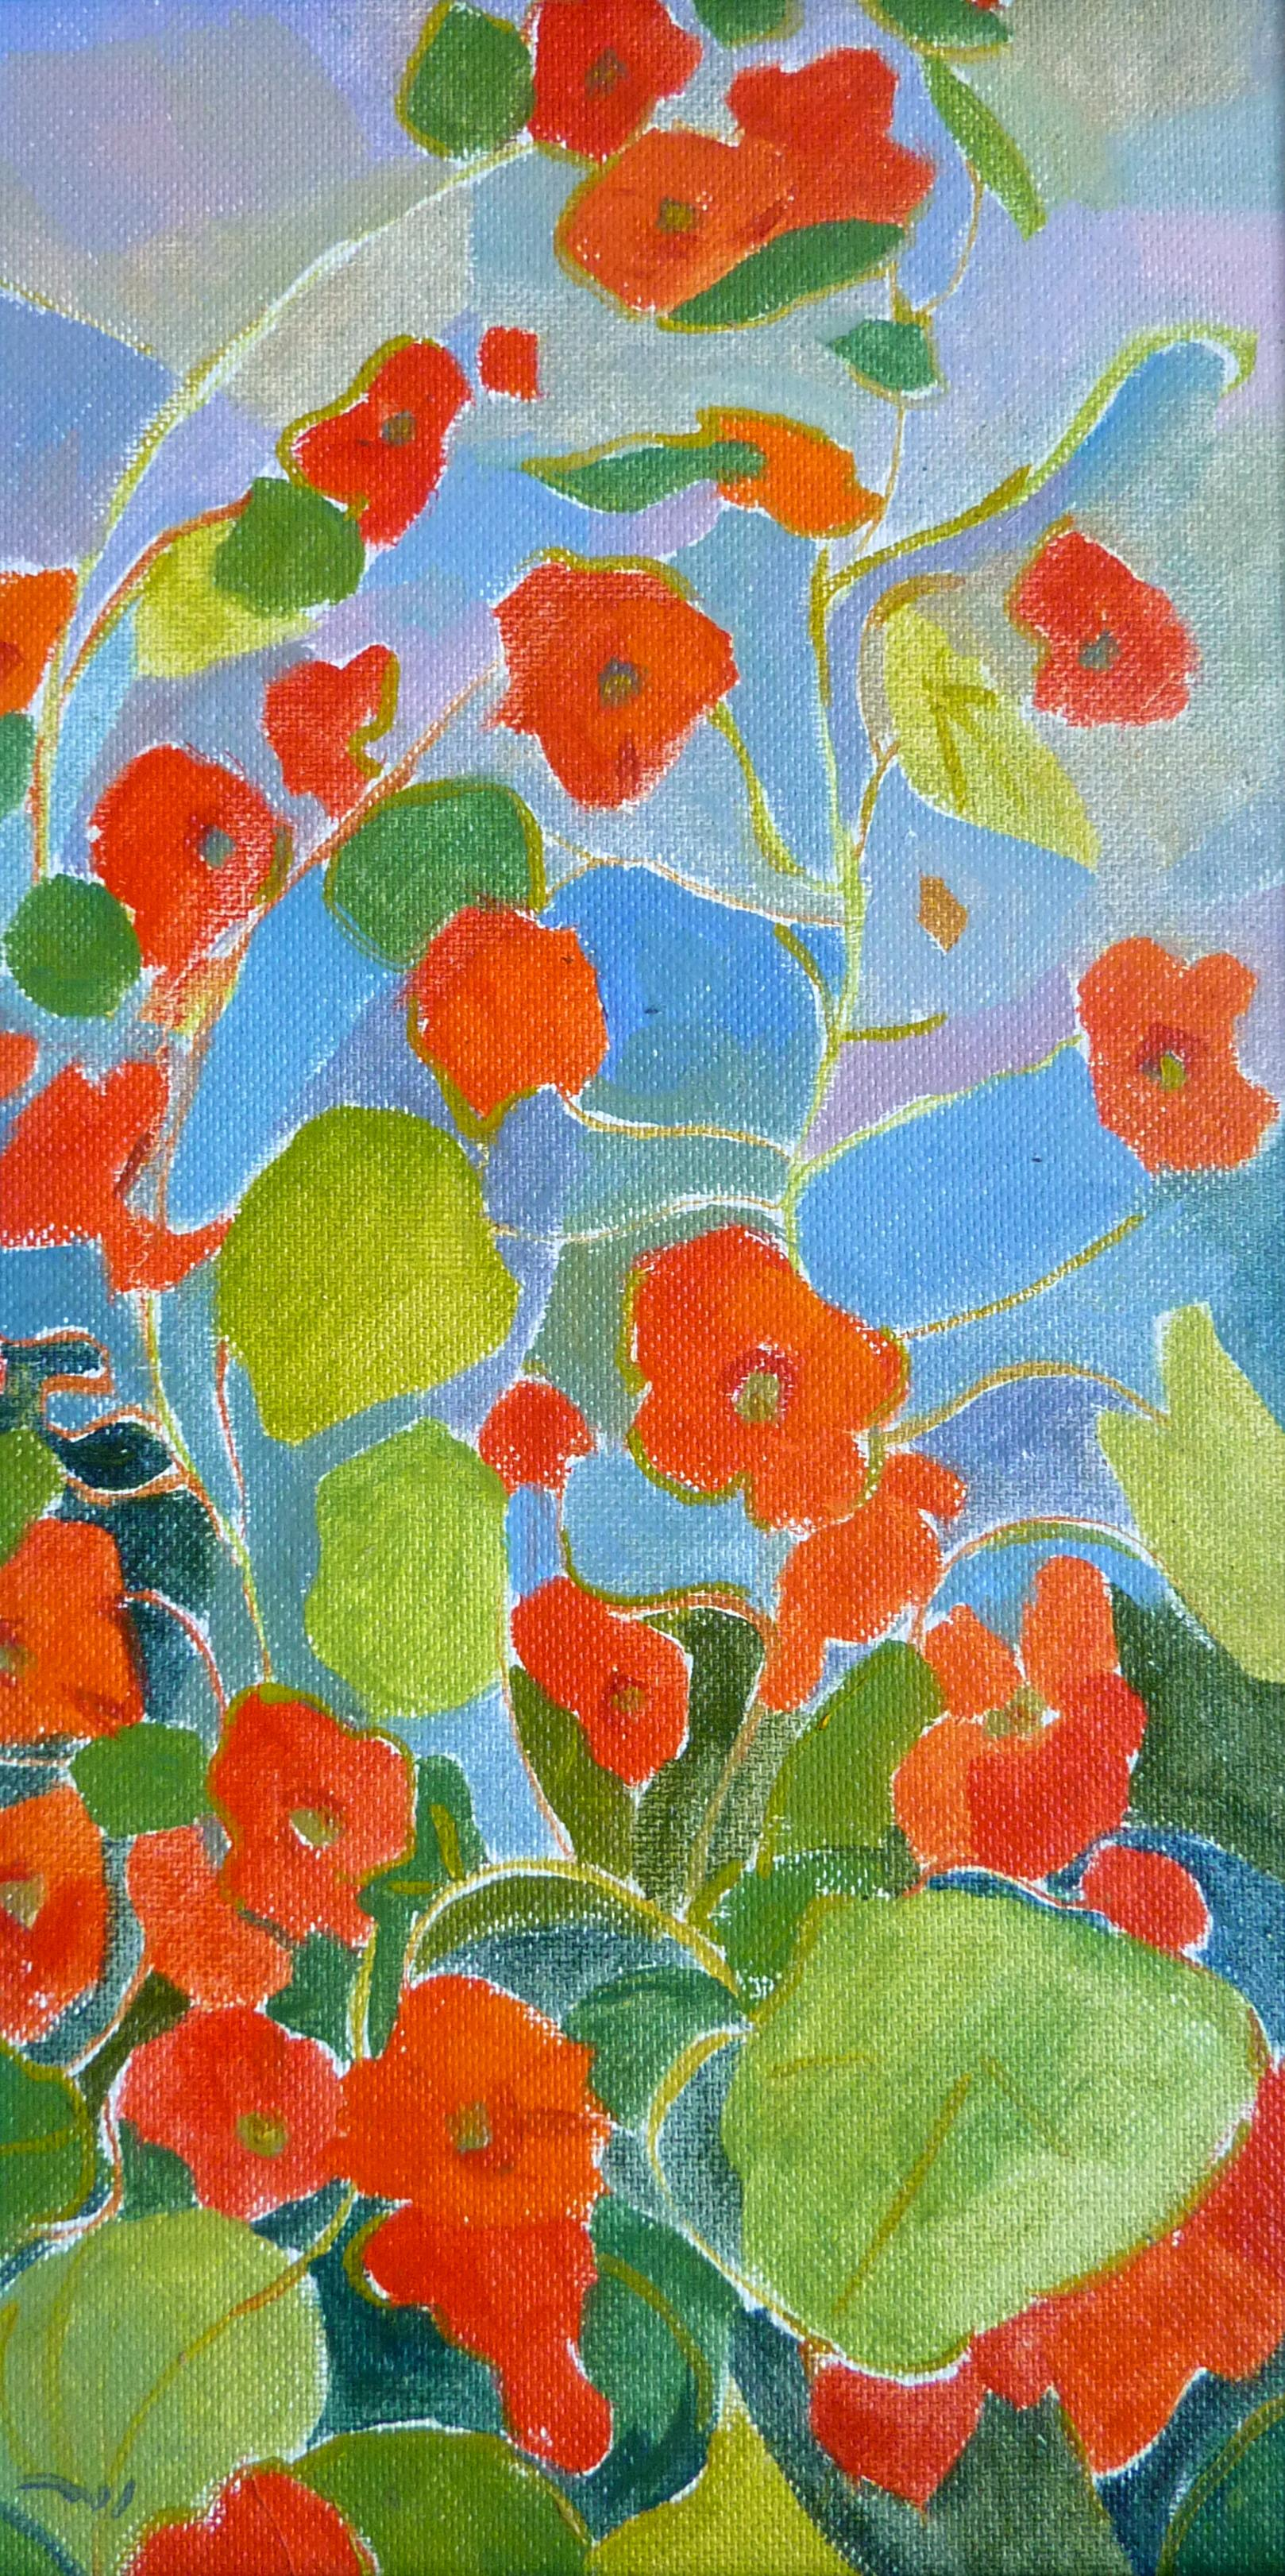 Red Flowers at the Garden - 21st Century Contemporary Naive Floral Oil Painting